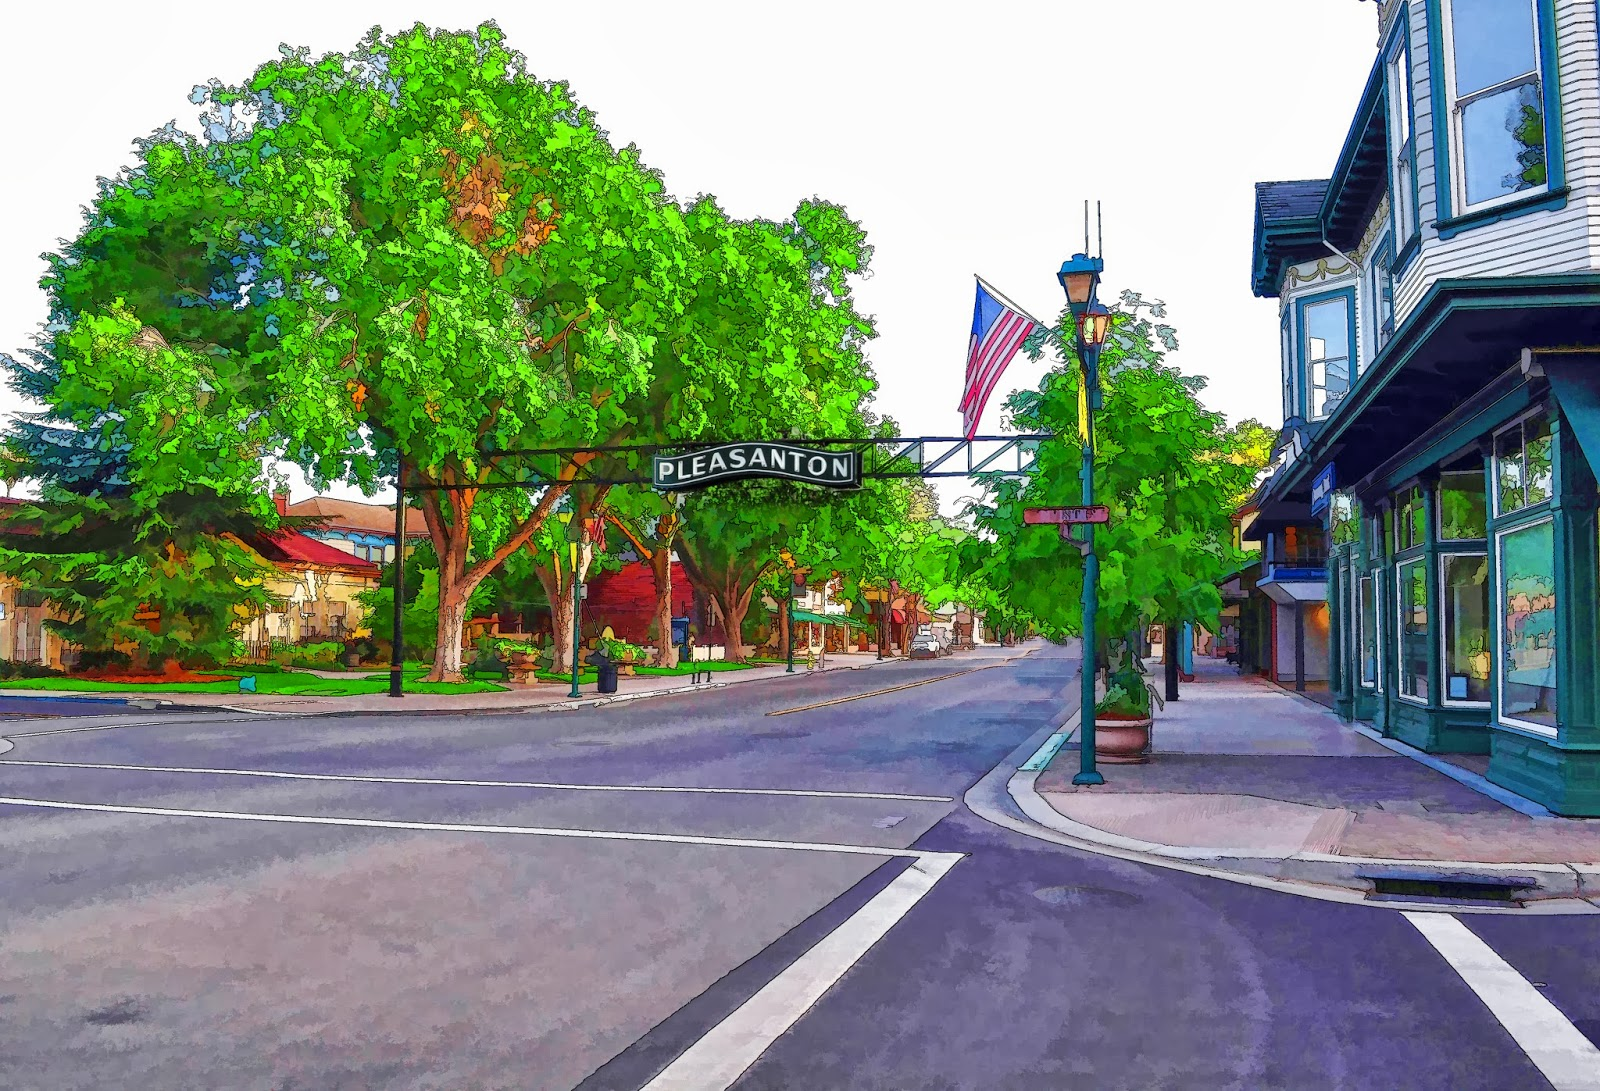 SimplyEvansPhotoArt BlogSite: I Love Downtown Pleasanton